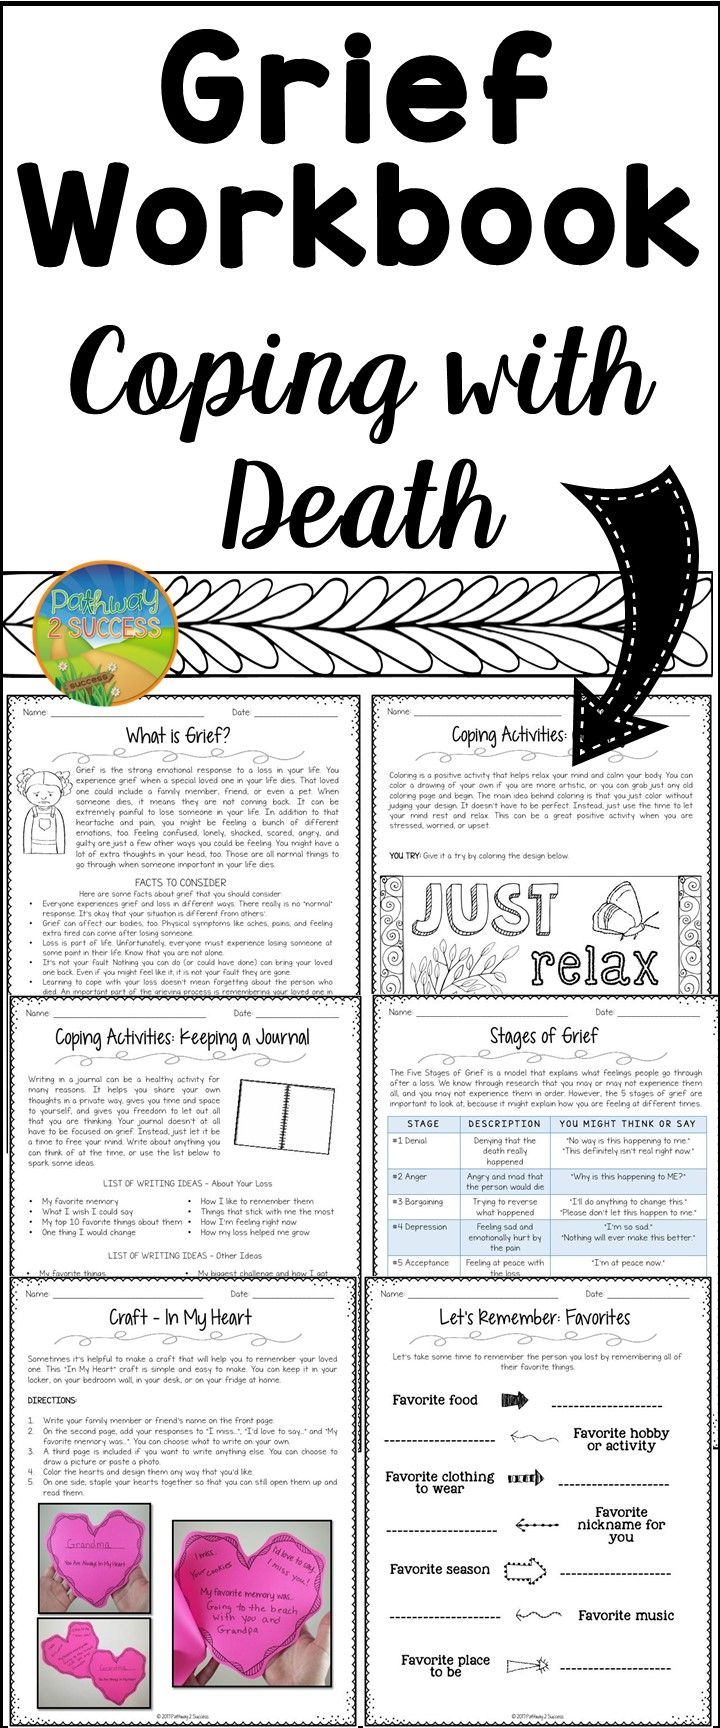 Worksheets Grief Worksheet grief workbook for coping with death counseling social work great resource counselors therapists workers and psychologists